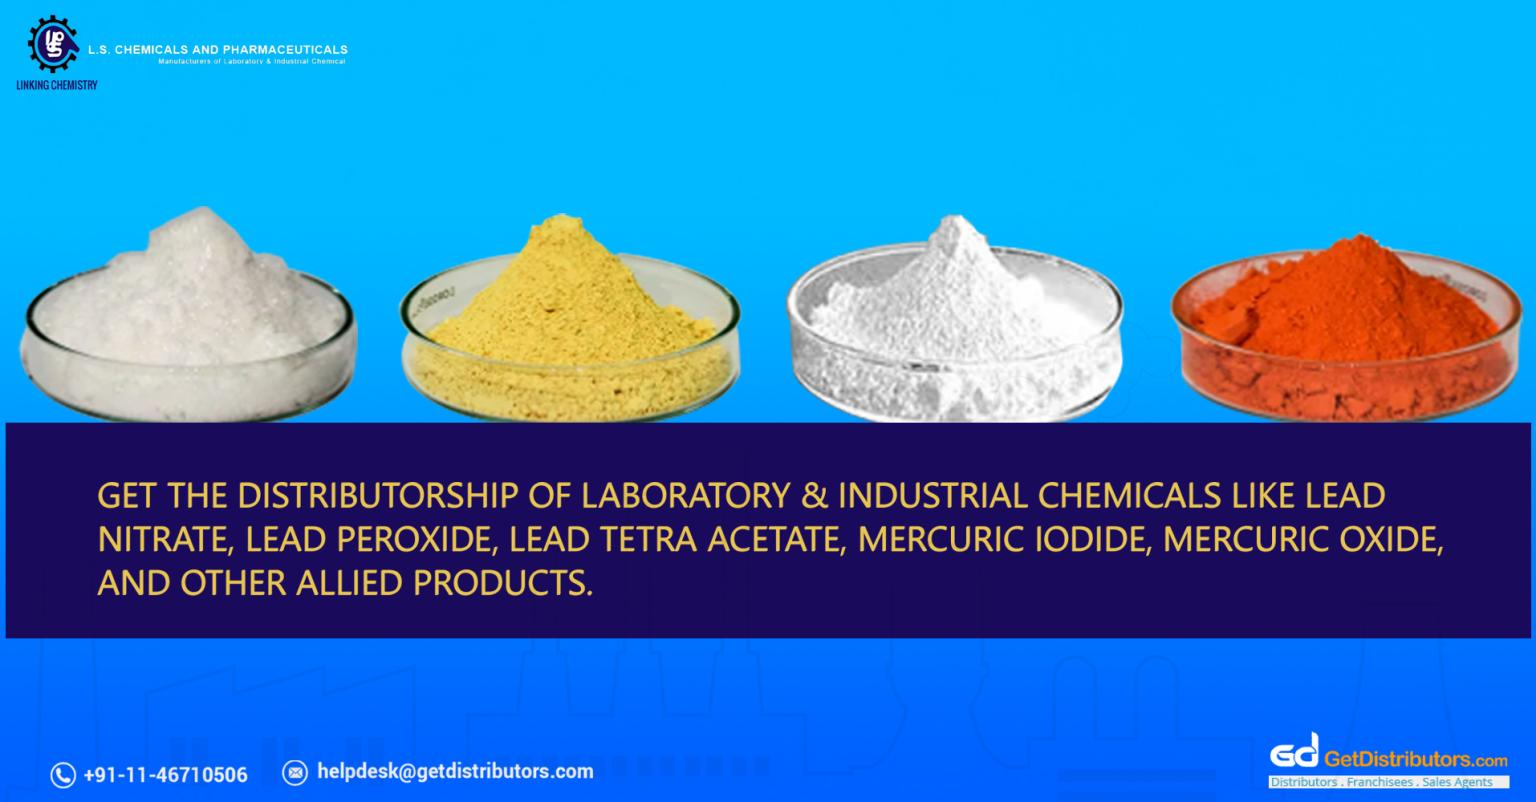 Offering Accurately Formulated Laboratory & Industrial Chemicals To Ensure Utmost Customer Satisfaction